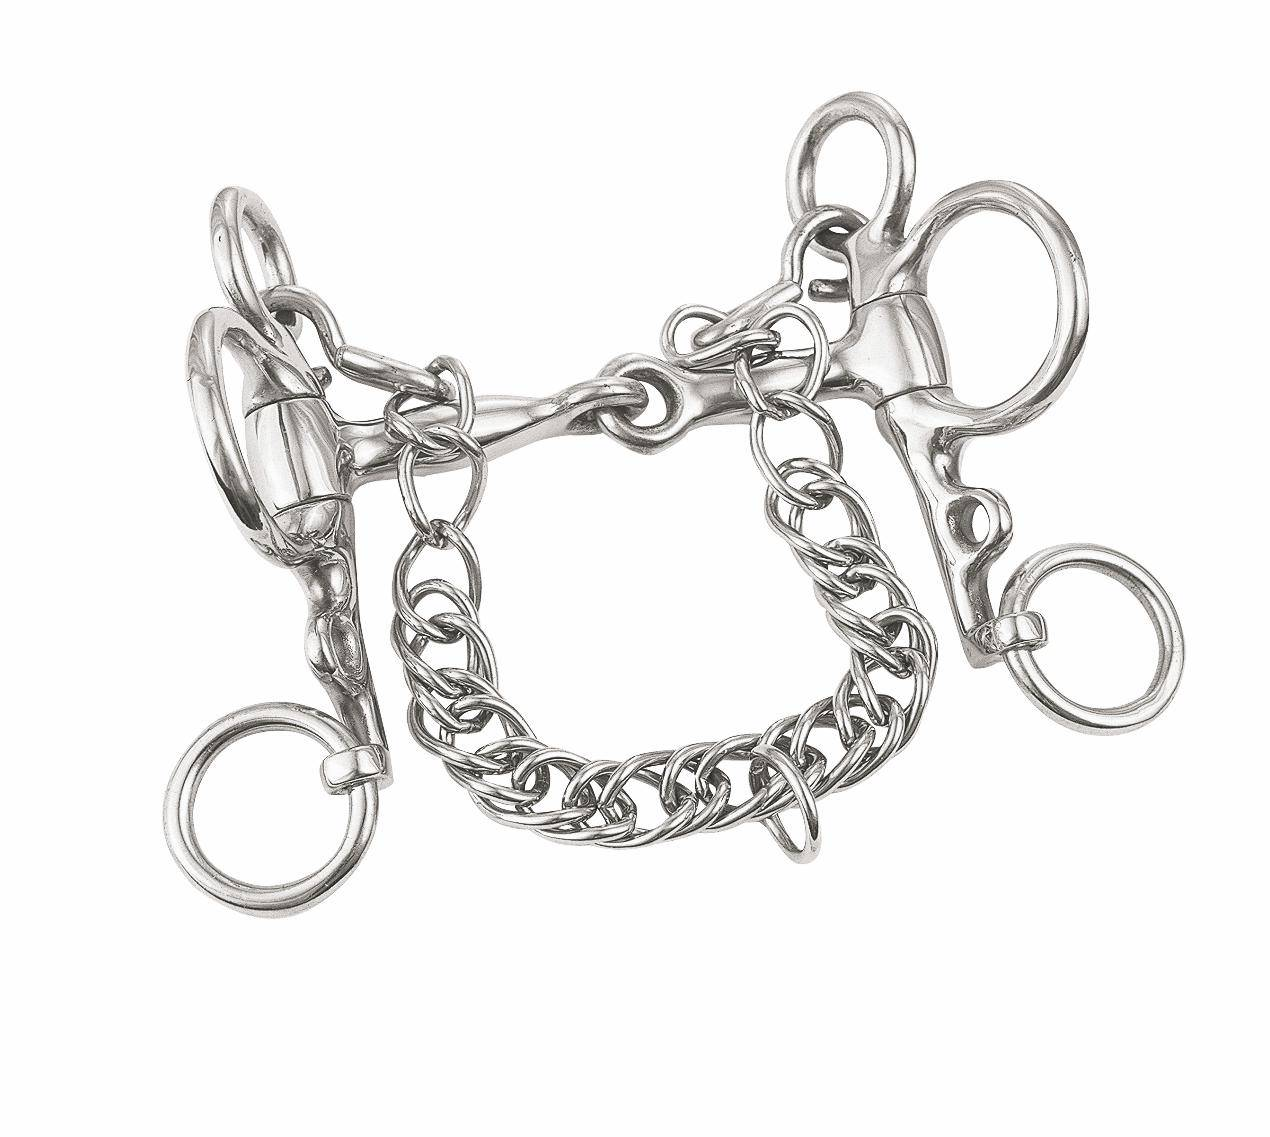 Weaver Leather Miniature Pelham Snaffle Bit